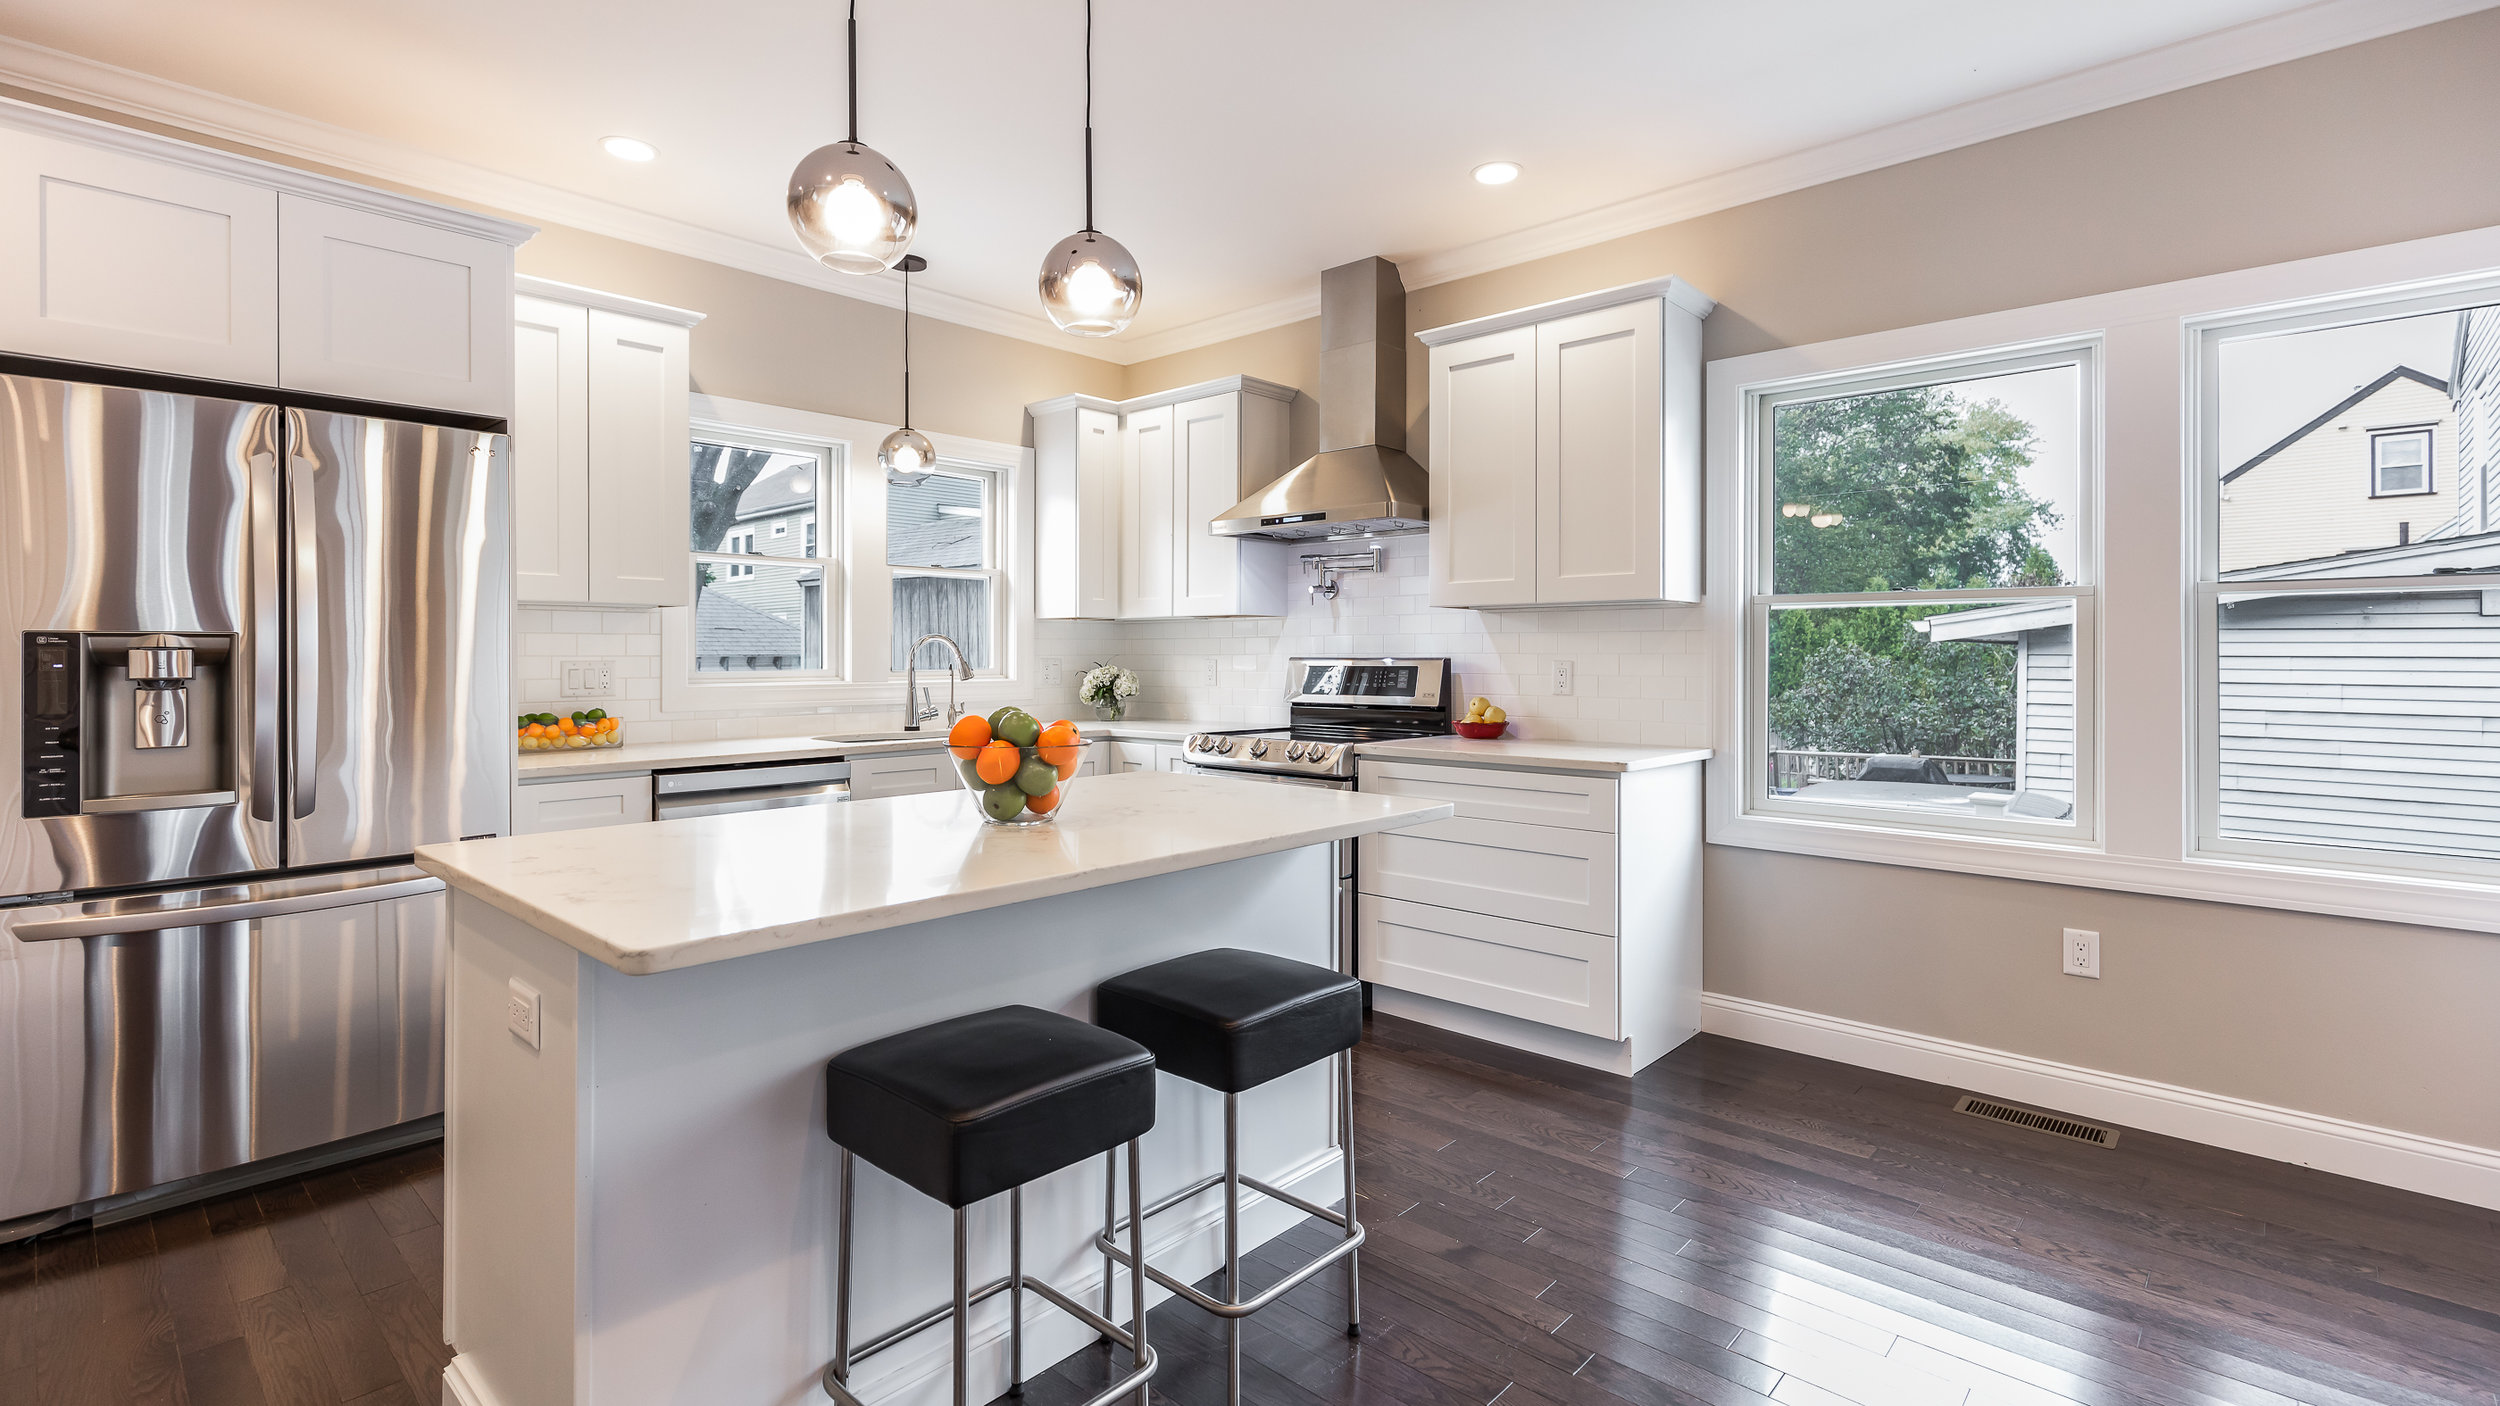 This was a really great open kitchen in a Cambridge townhouse. I love the dark floors with the bright white counters and cabinets